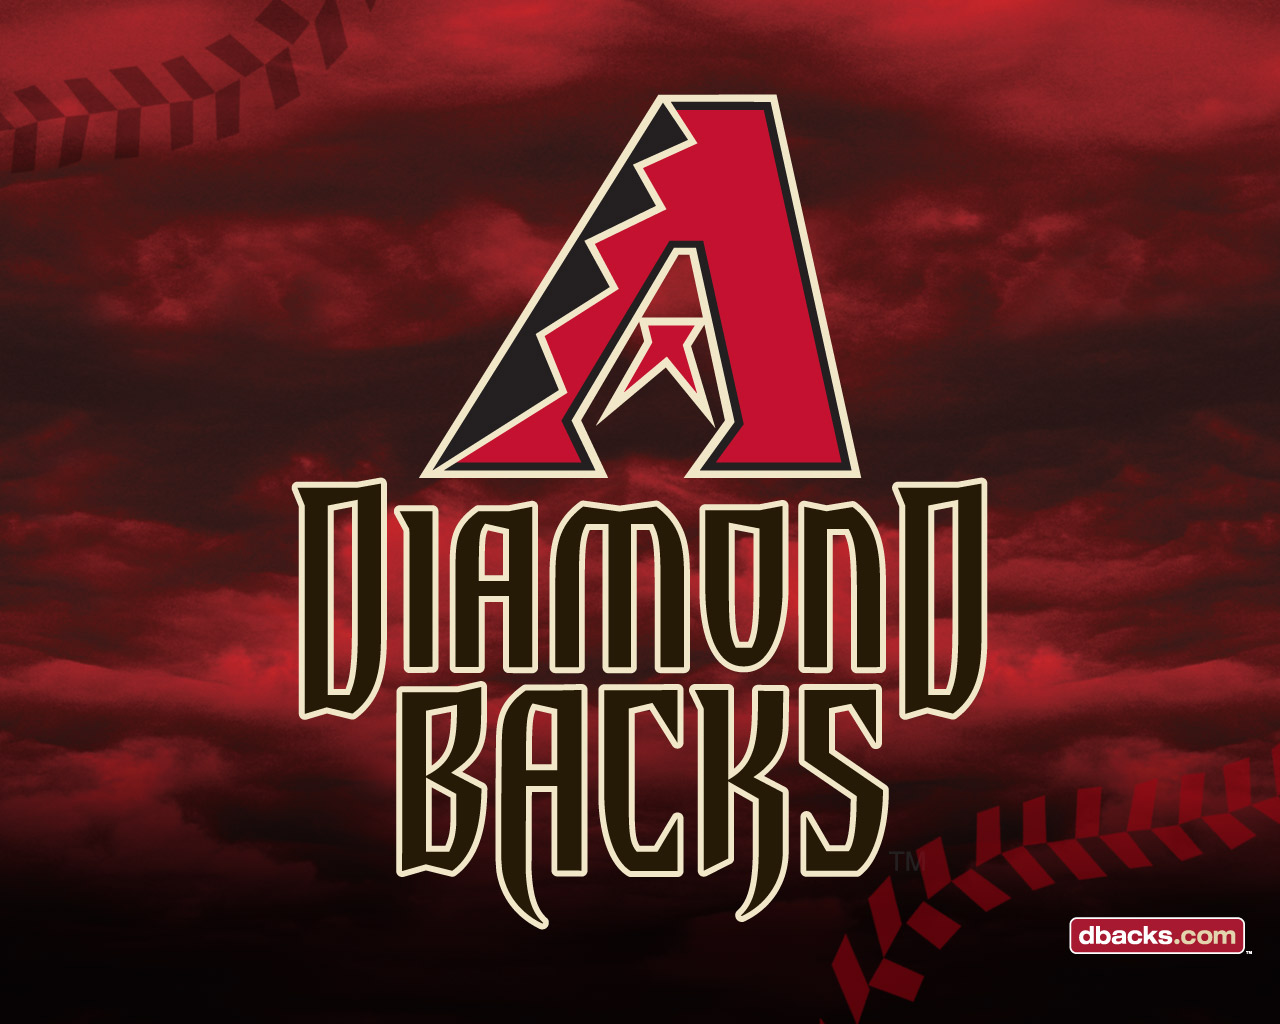 Arizona-Diamondbacks-D-Backs-1-E922IQIFJG-1280x1024.jpg